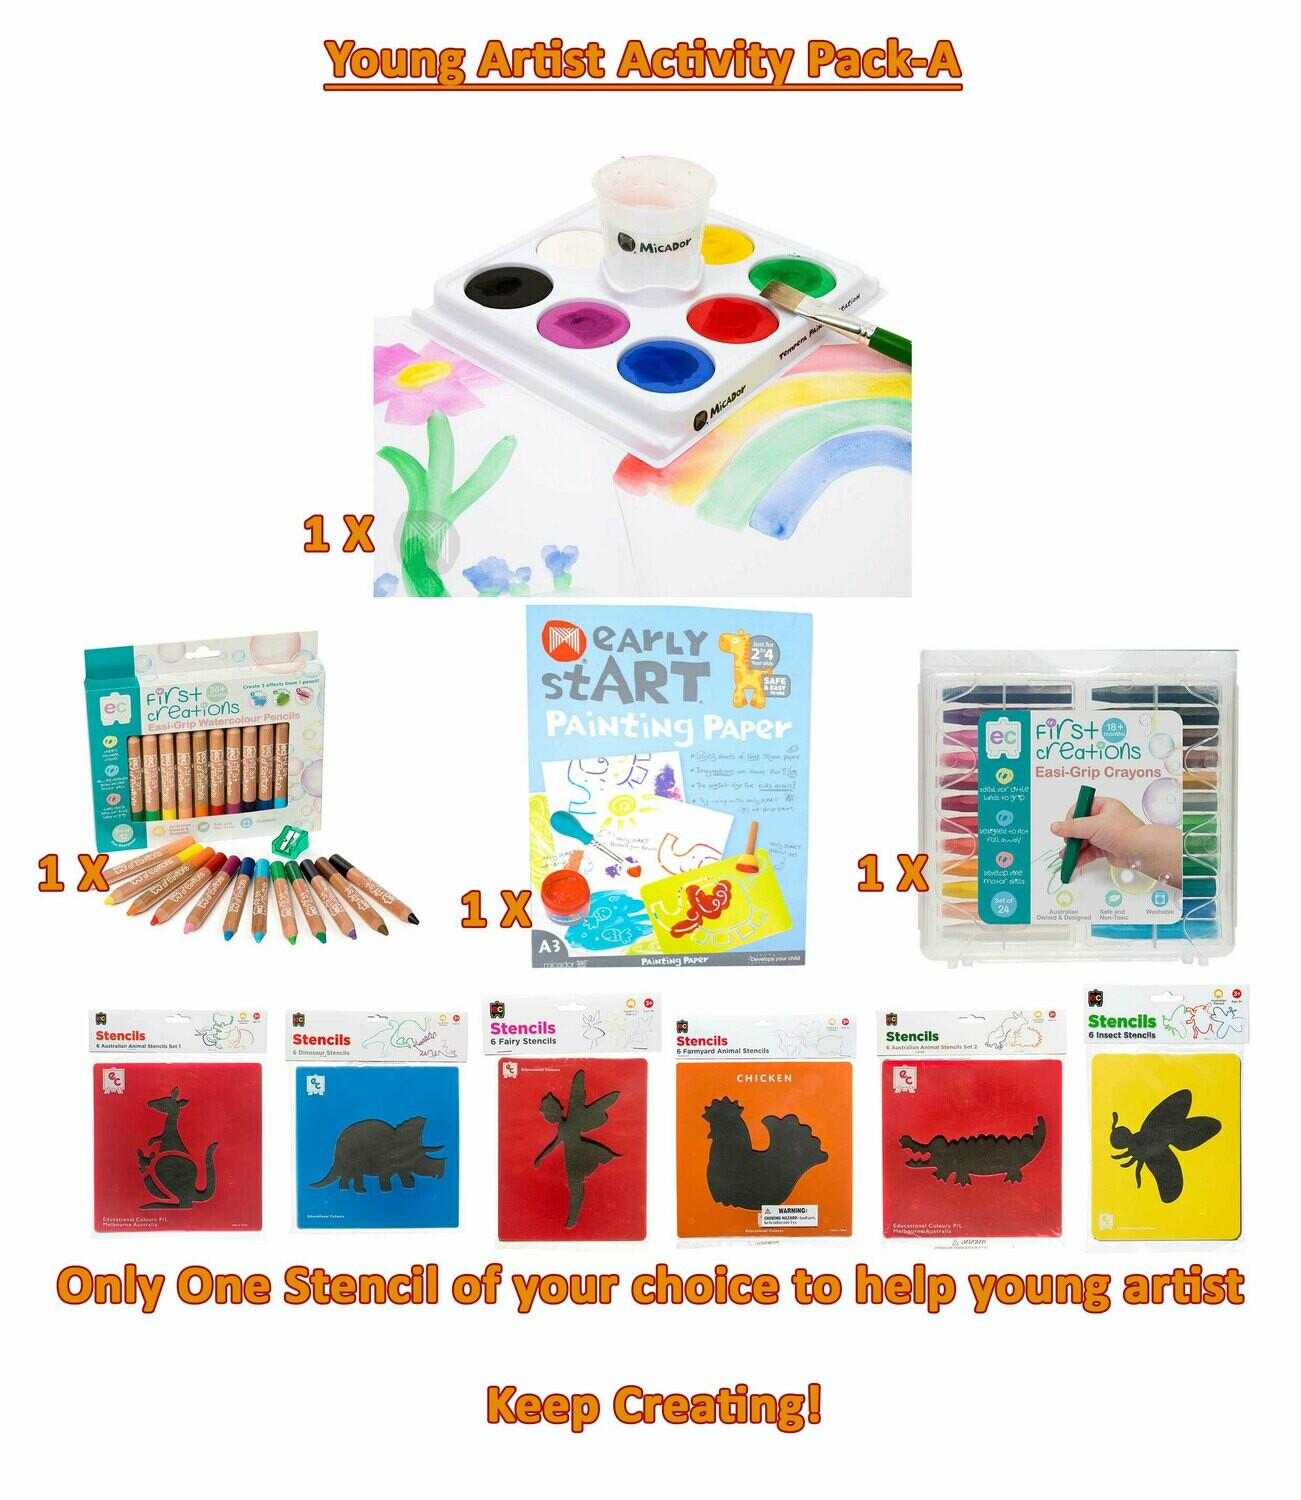 Young Artist Activity Pack-A (PDF Instruction book)